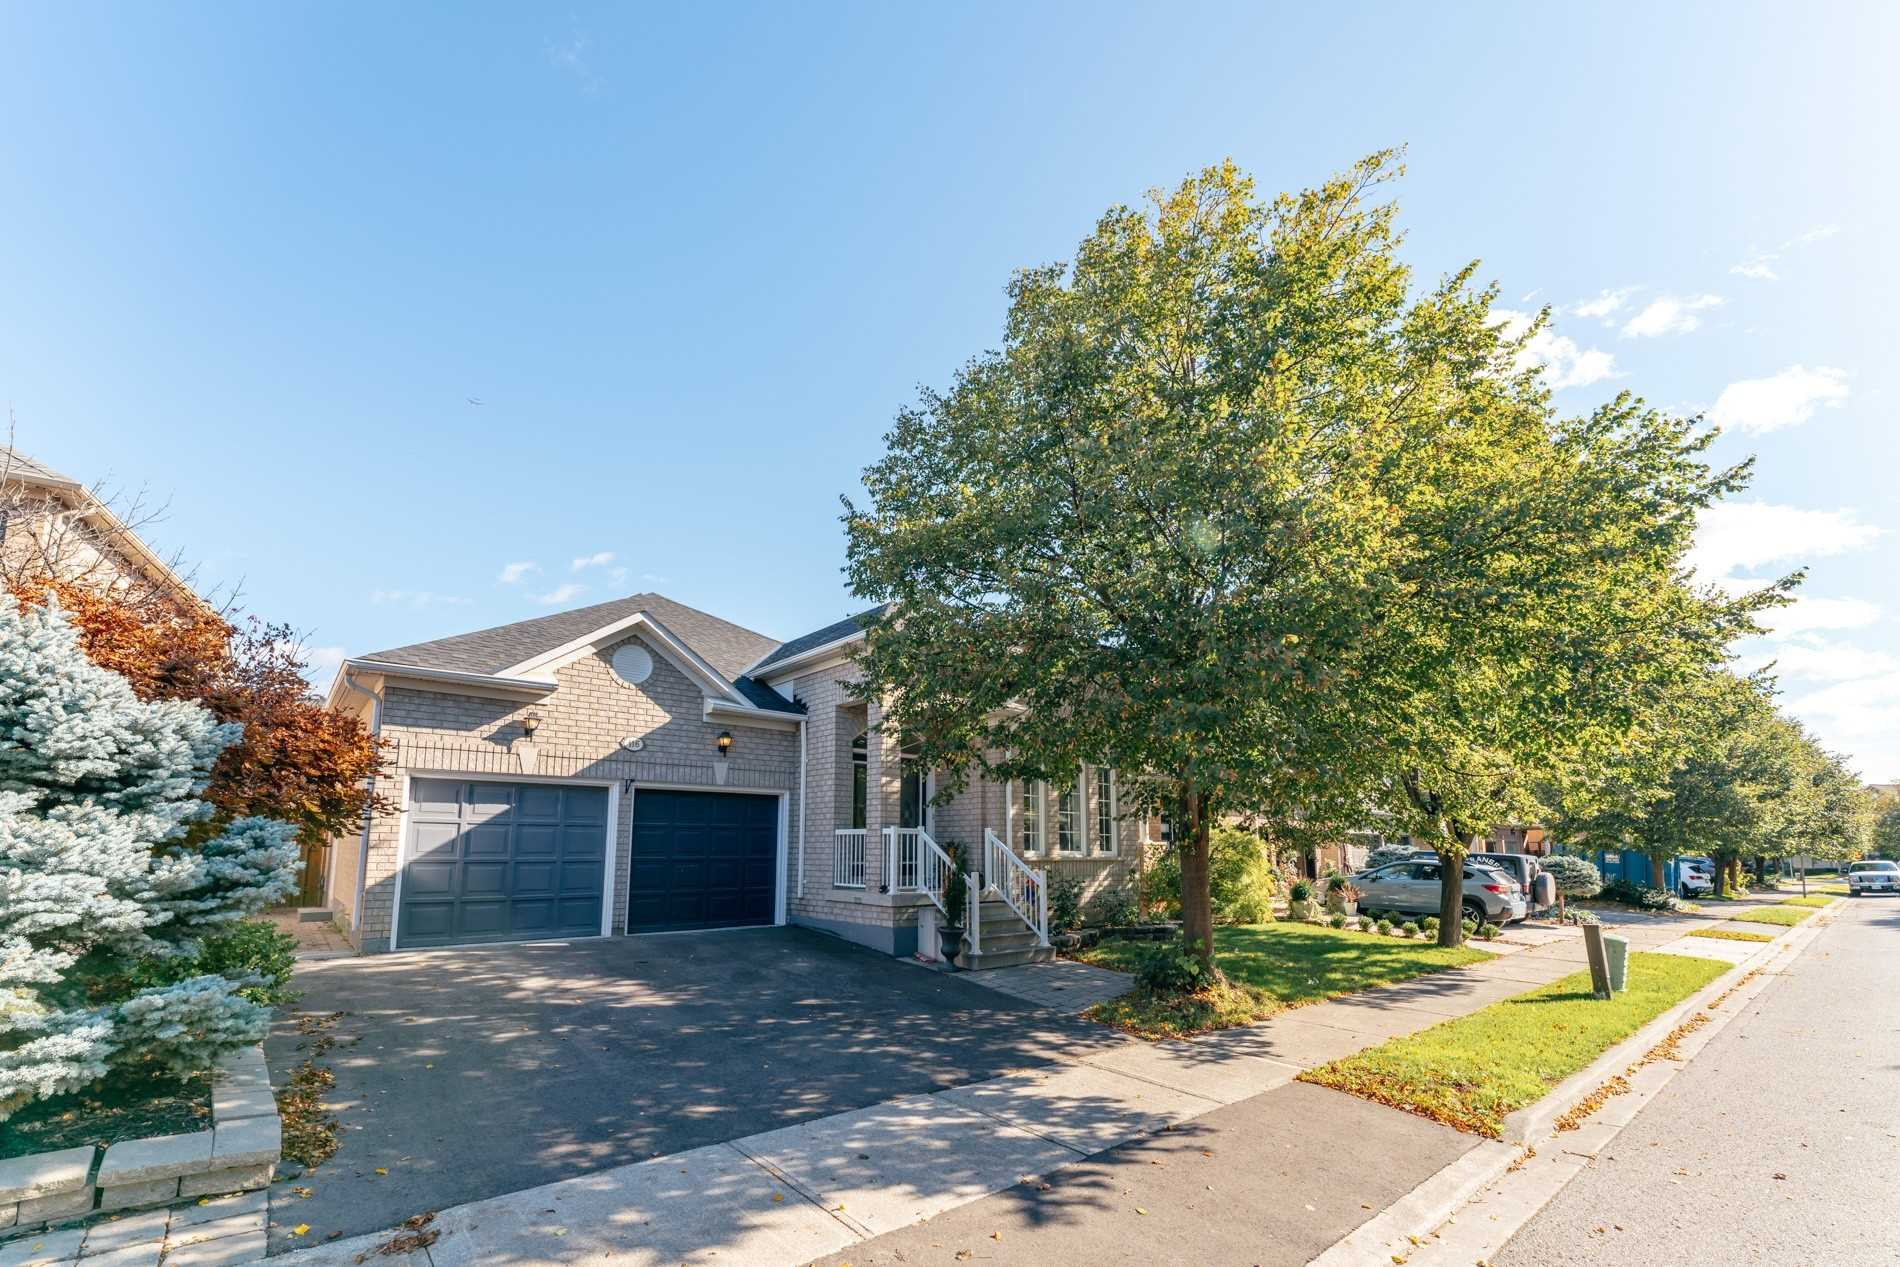 Detached house For Lease In Vaughan - 116 Marbella Rd, Vaughan, Ontario, Canada L4H1L4 , 2 Bedrooms Bedrooms, ,1 BathroomBathrooms,Detached,For Lease,Lower,Marbella